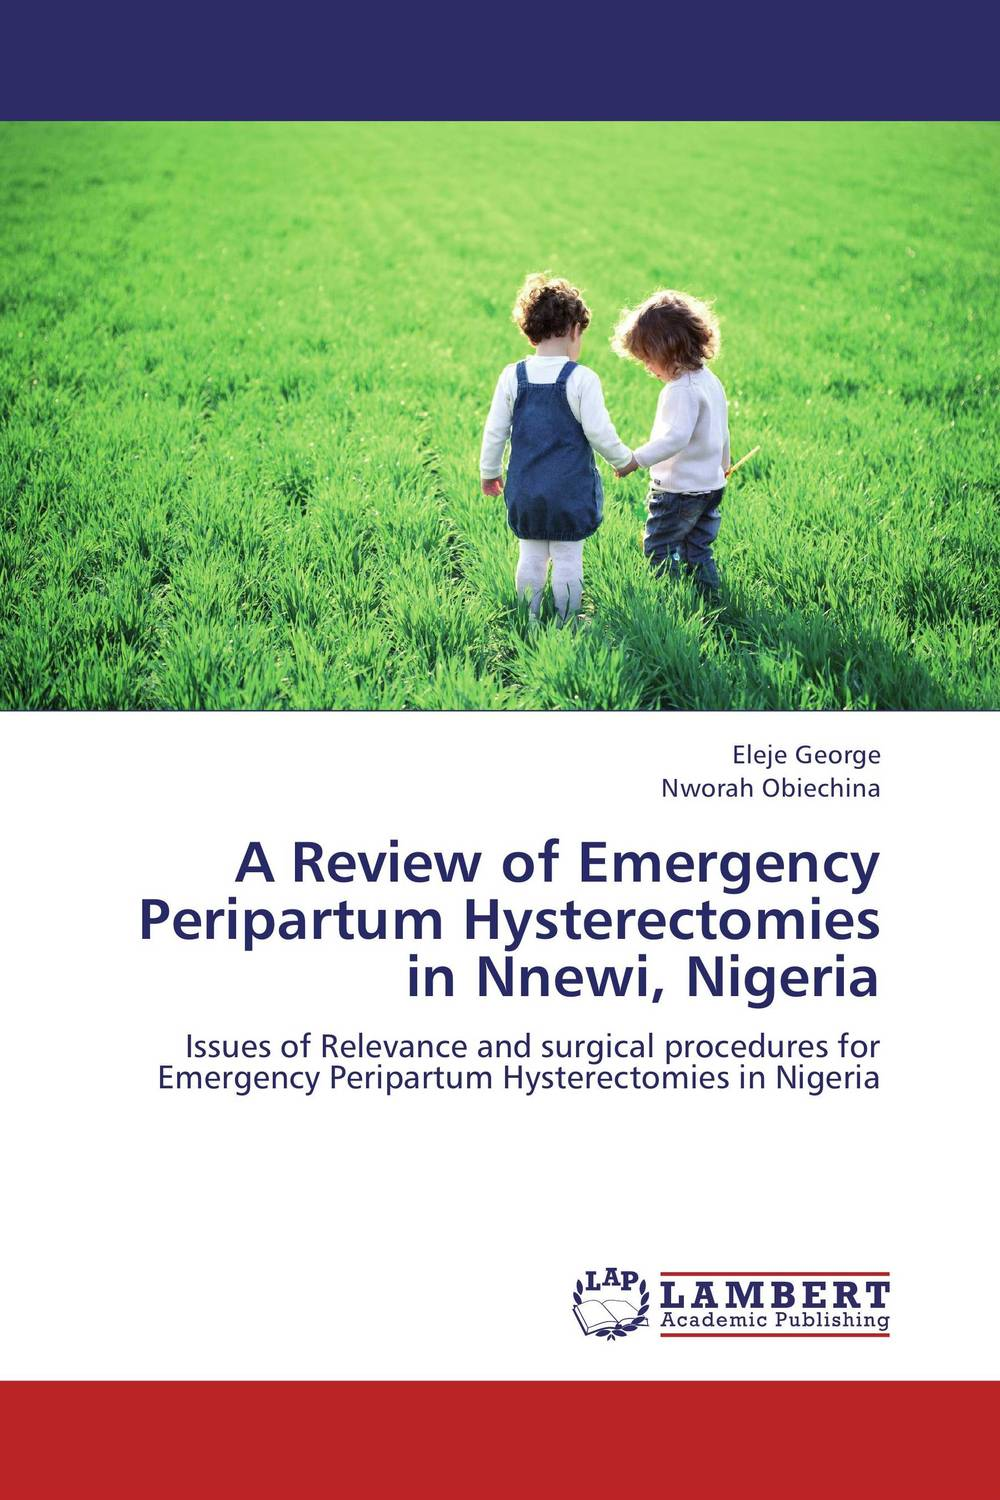 A Review of Emergency Peripartum Hysterectomies in Nnewi, Nigeria